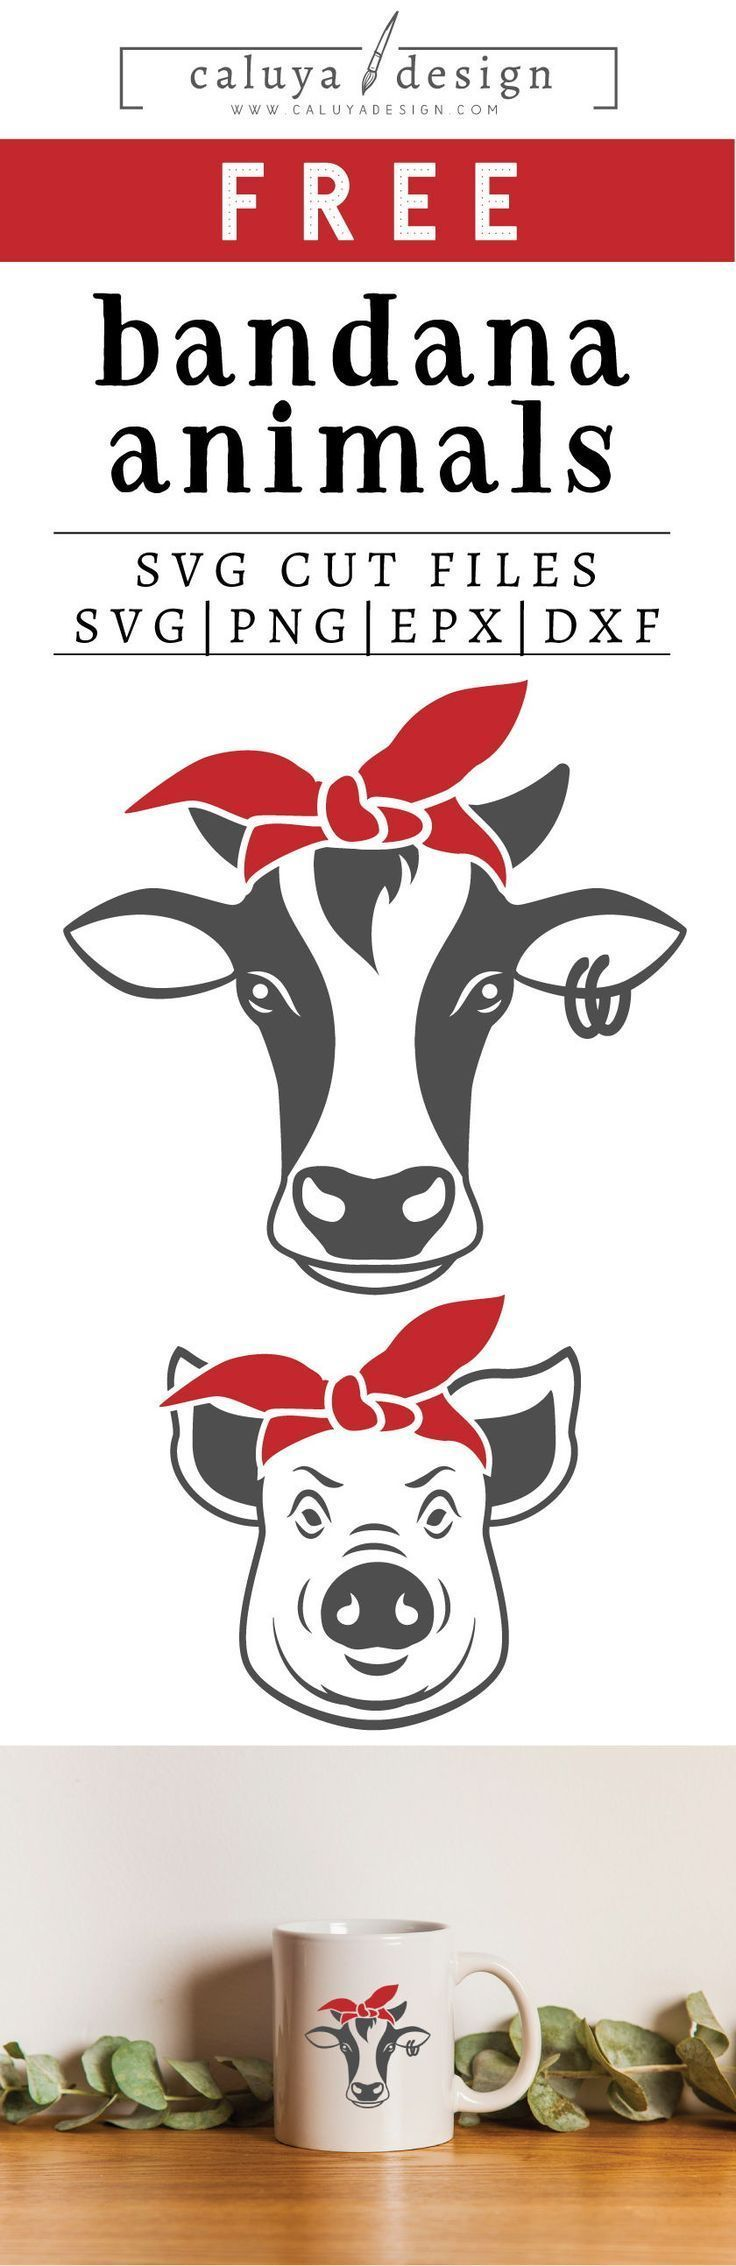 Free Animal Bandana SVG, PNG, EPS & DXF by Free